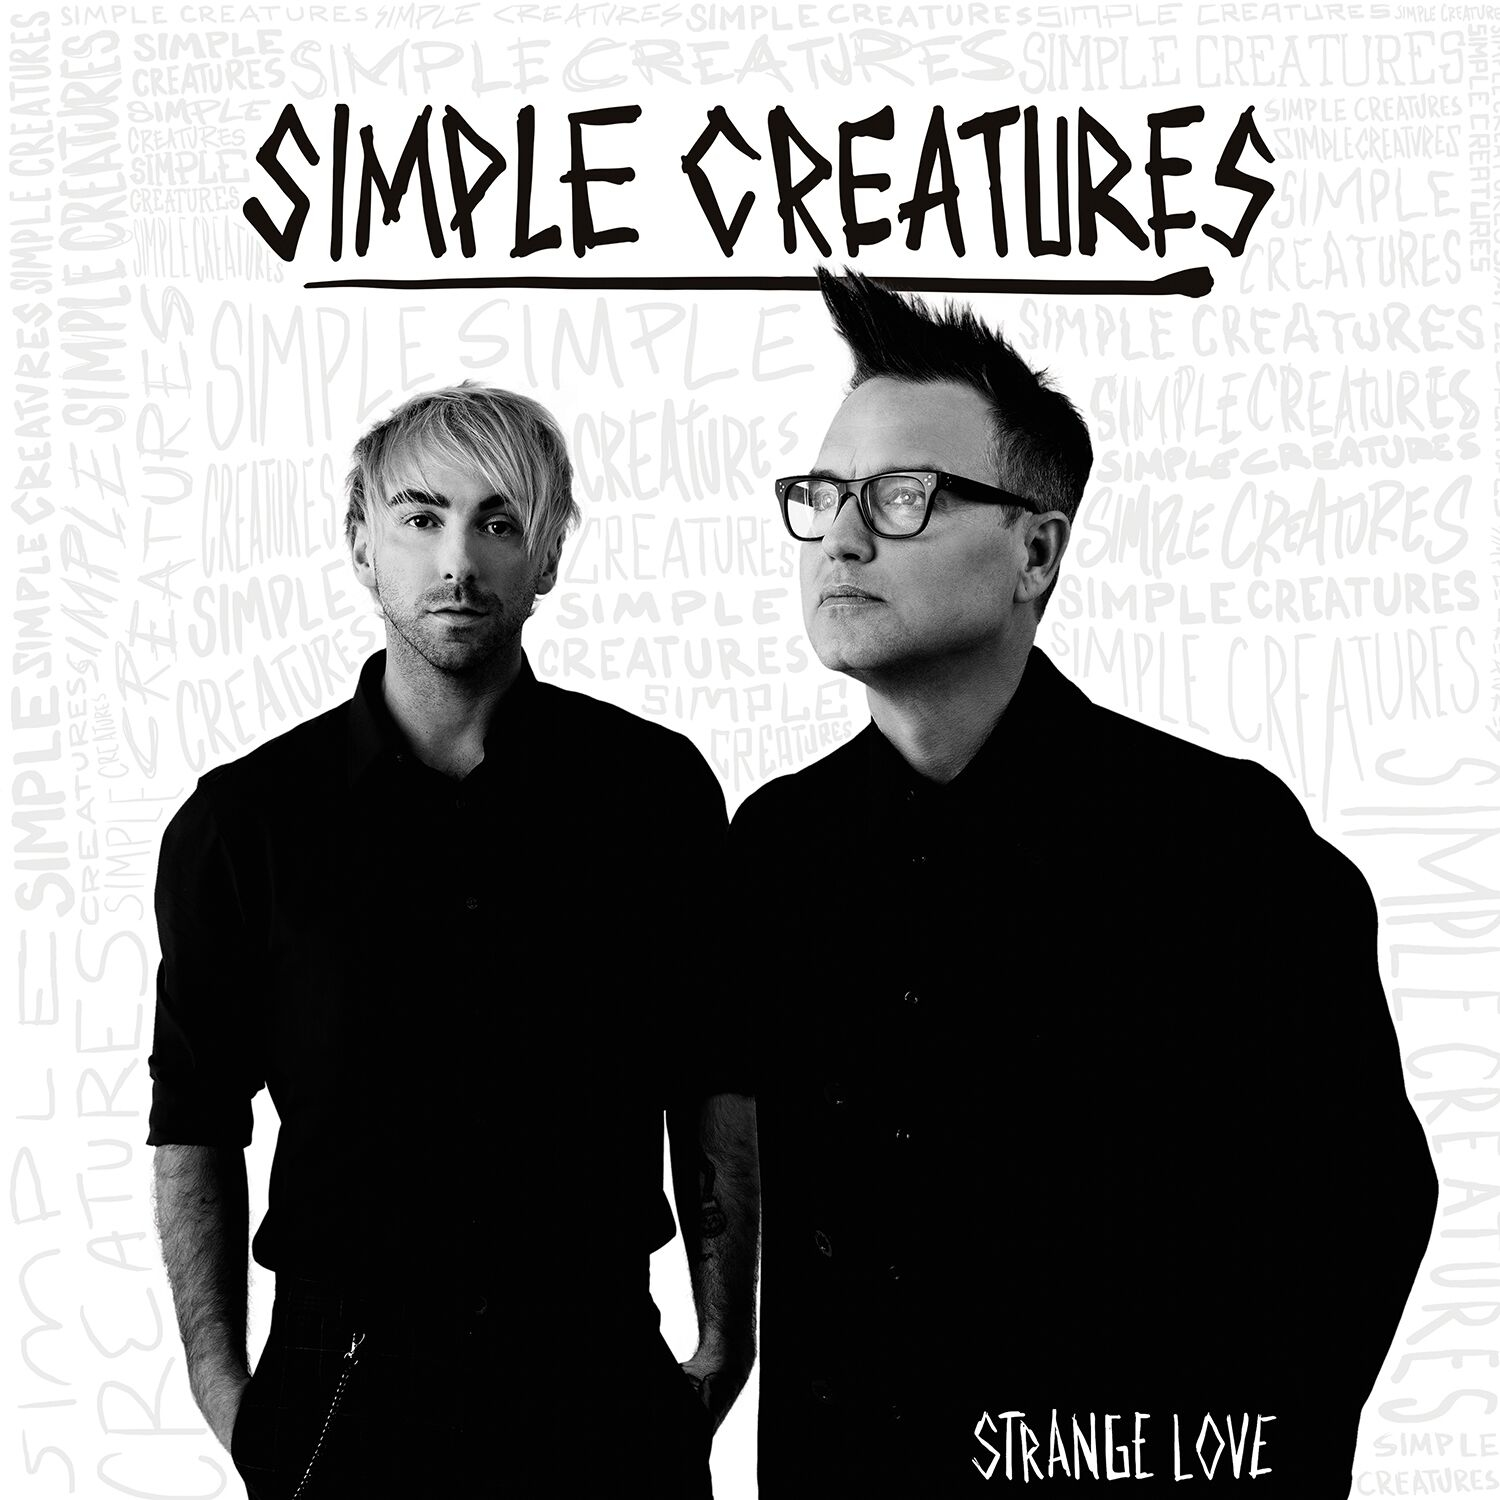 simple-creatures-strange-love-ep-hohe-erwartungen-album-review